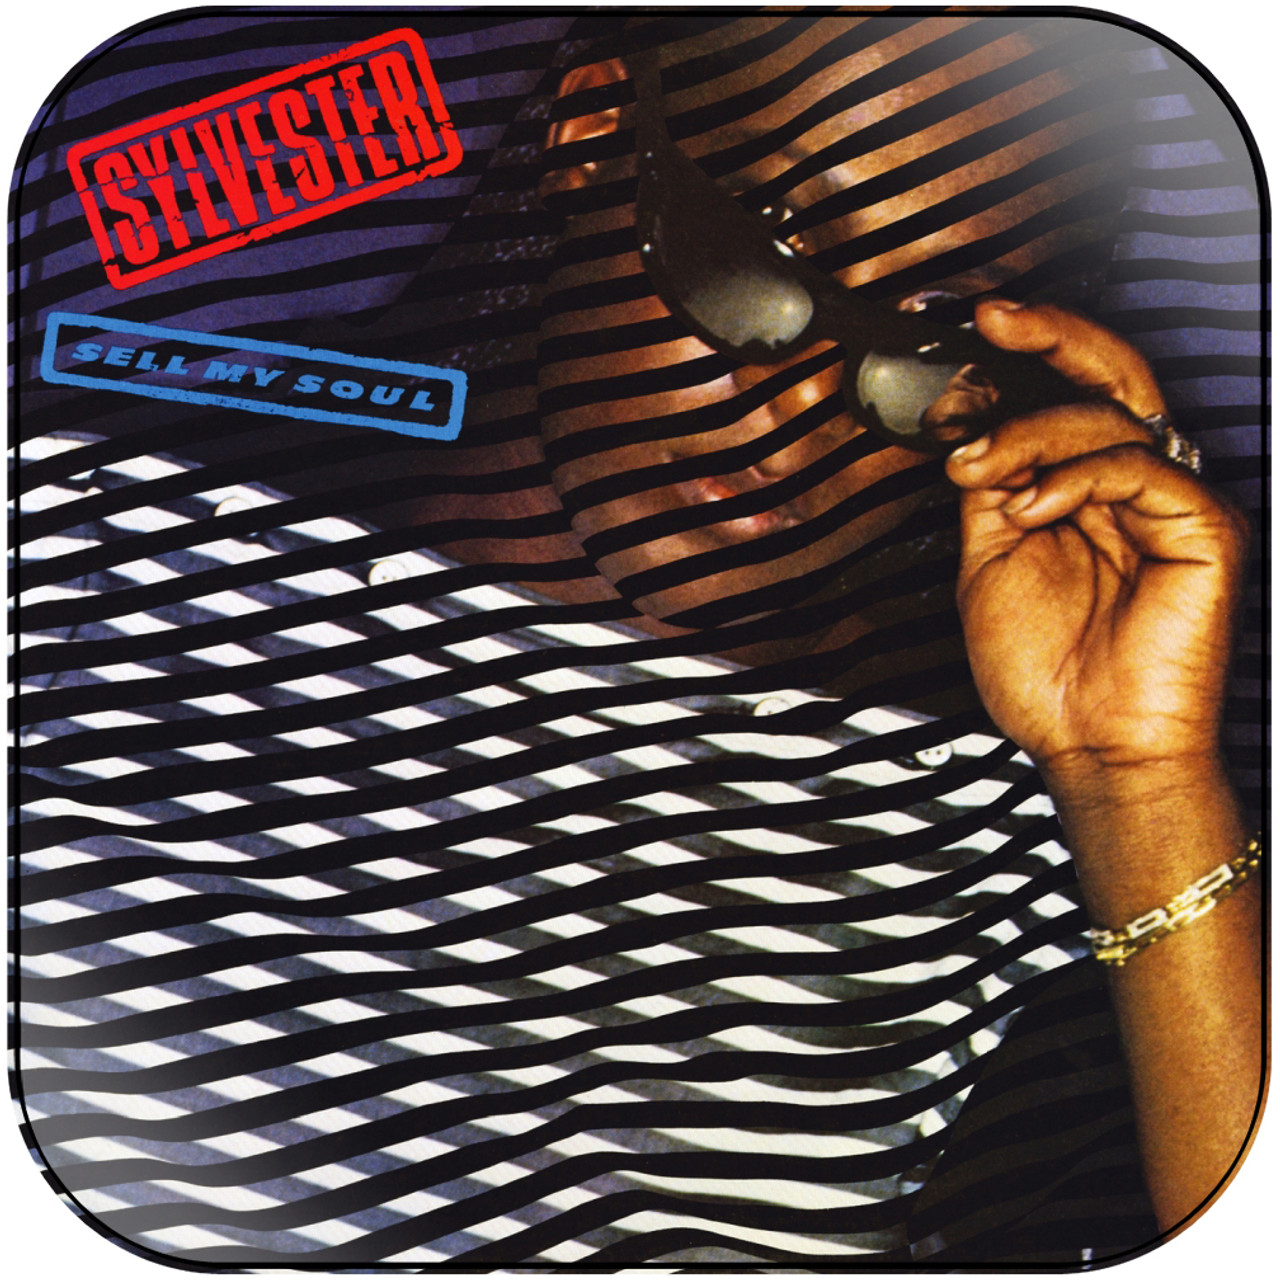 Sylvester - Sell My Soul Album Cover Sticker